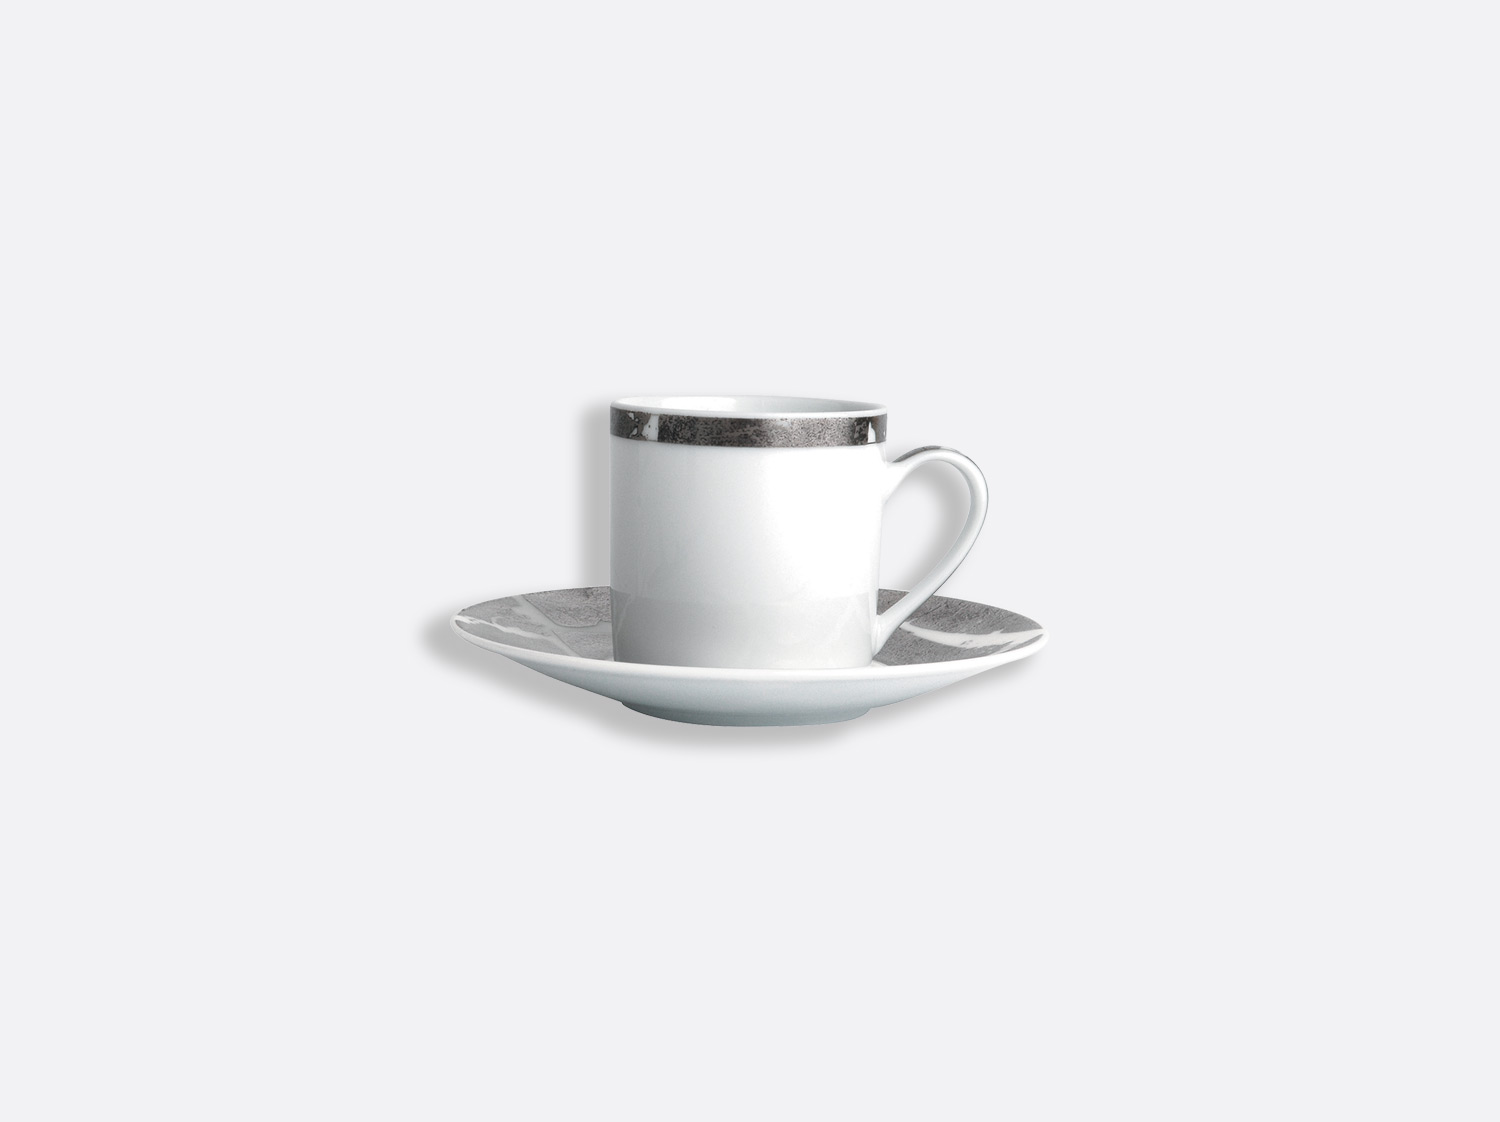 China Coffee cup and saucer gift box - 8 cl - Per unit of the collection Silver leaf | Bernardaud